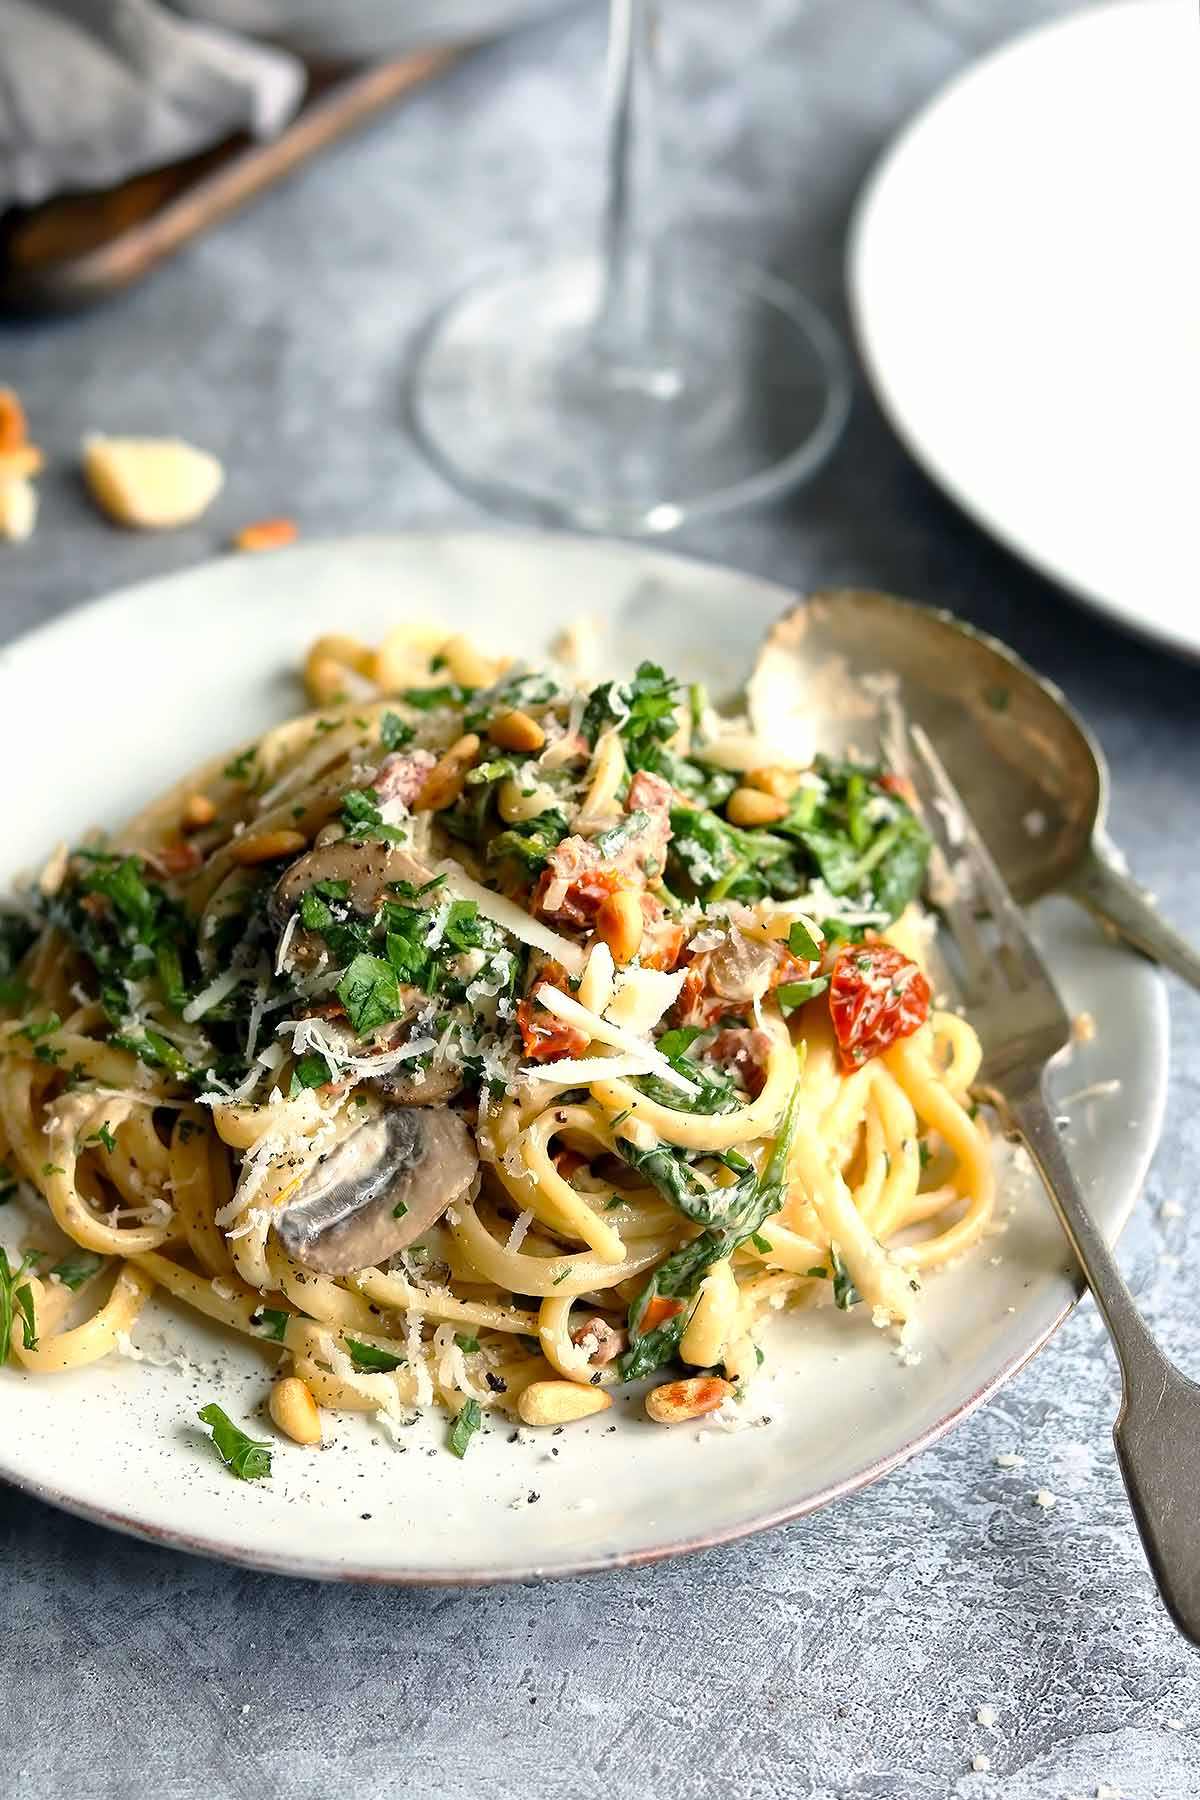 Pasta with Mushrooms, Spinach, sun-dried tomatoes in white wine sauce